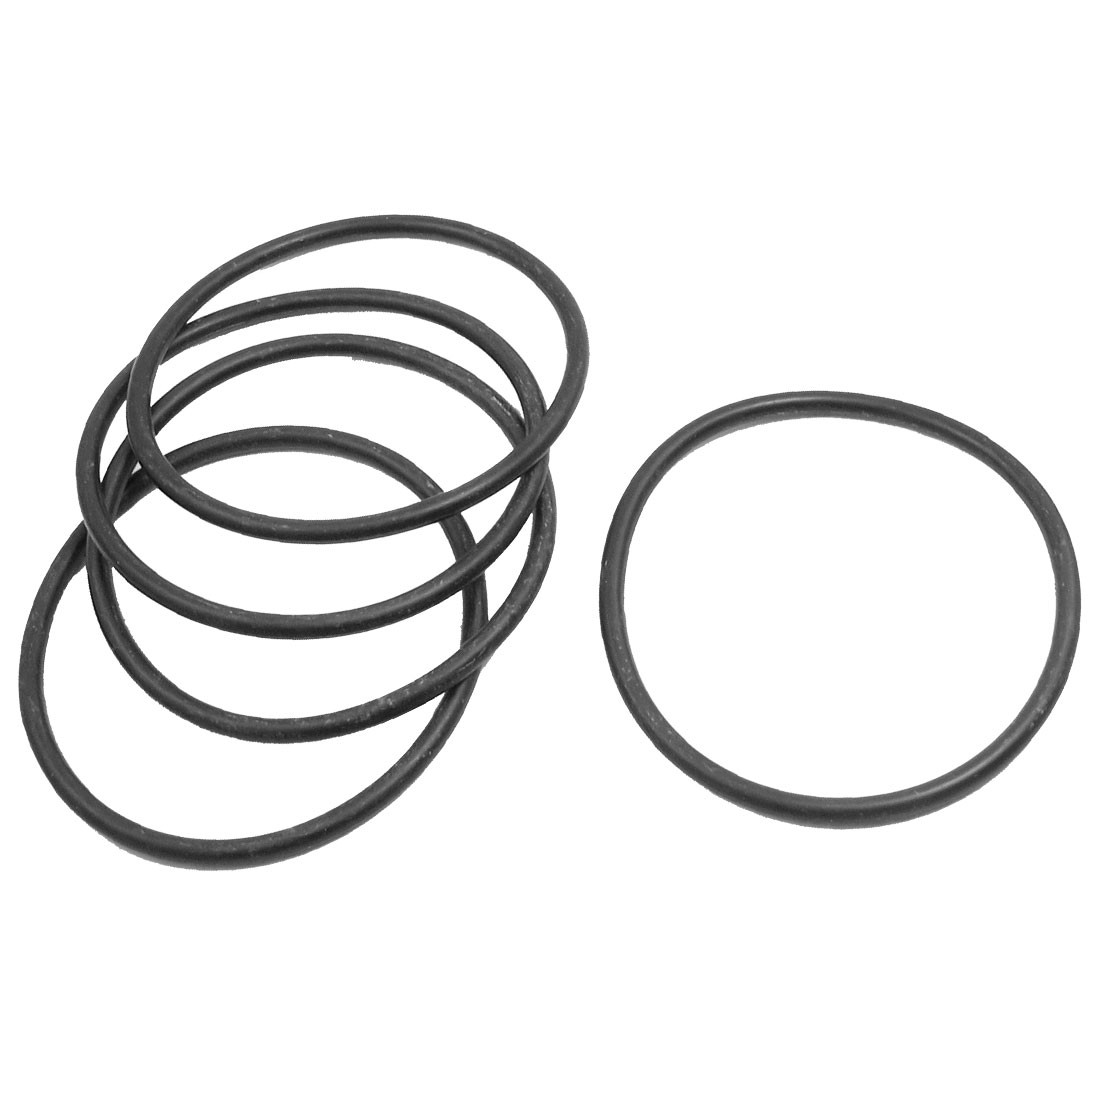 5 Pcs 75mm x 4mm Flexible Sealing Washers Oil Filter O Rings Black